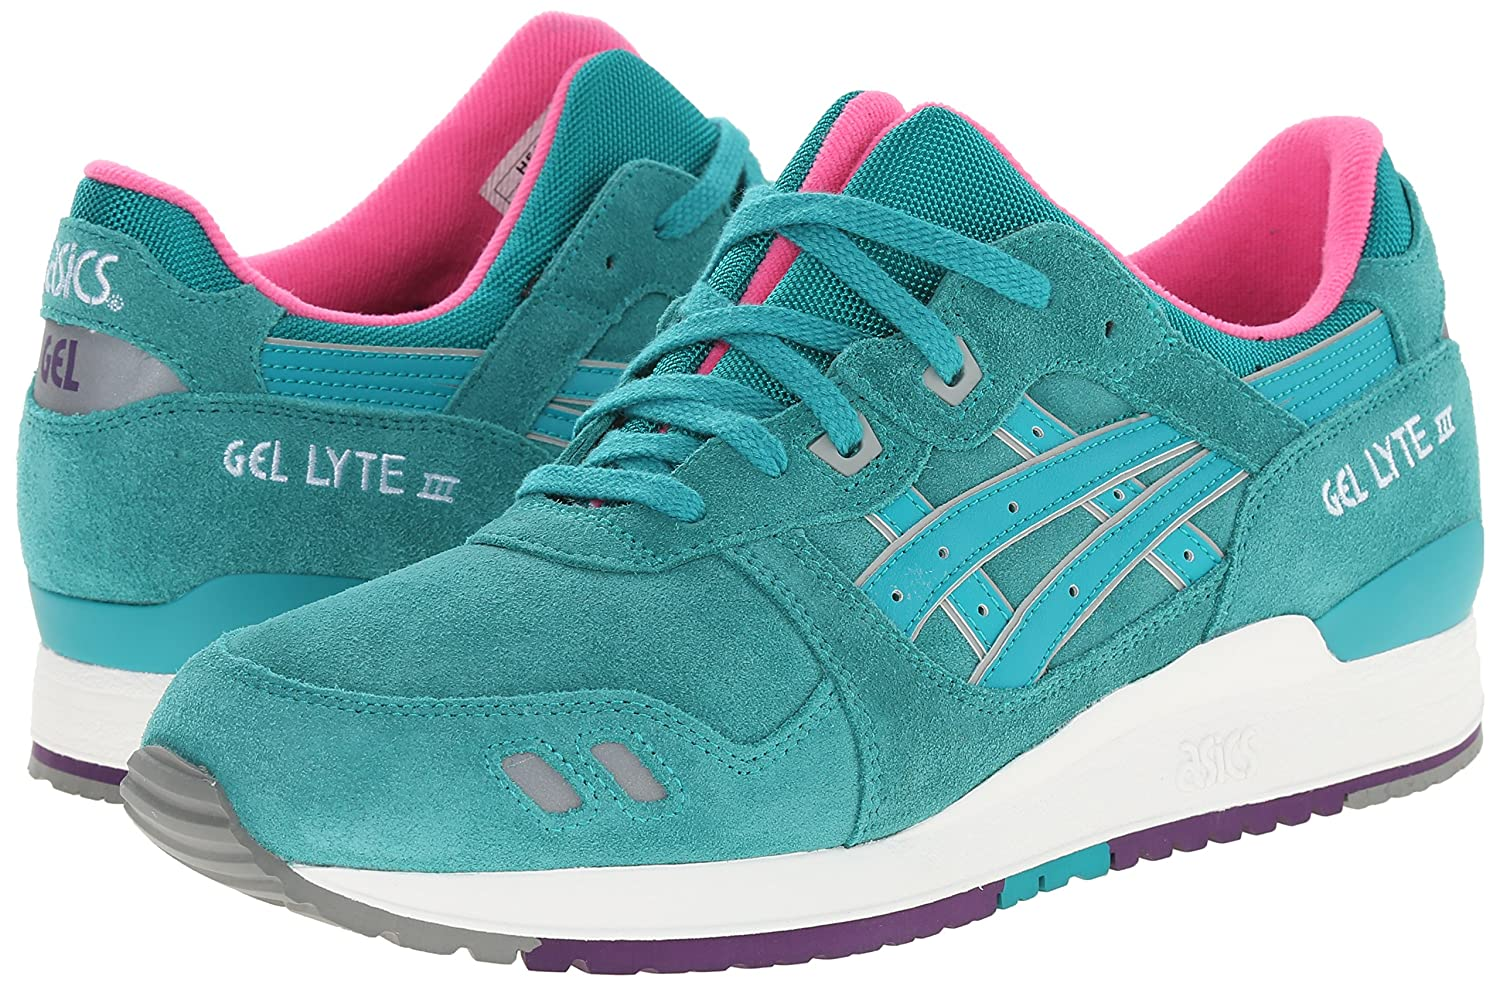 sports shoes 6ced6 77c4d Asics Girl's Gel-Lyte Iii Ankle-High Tennis Shoe